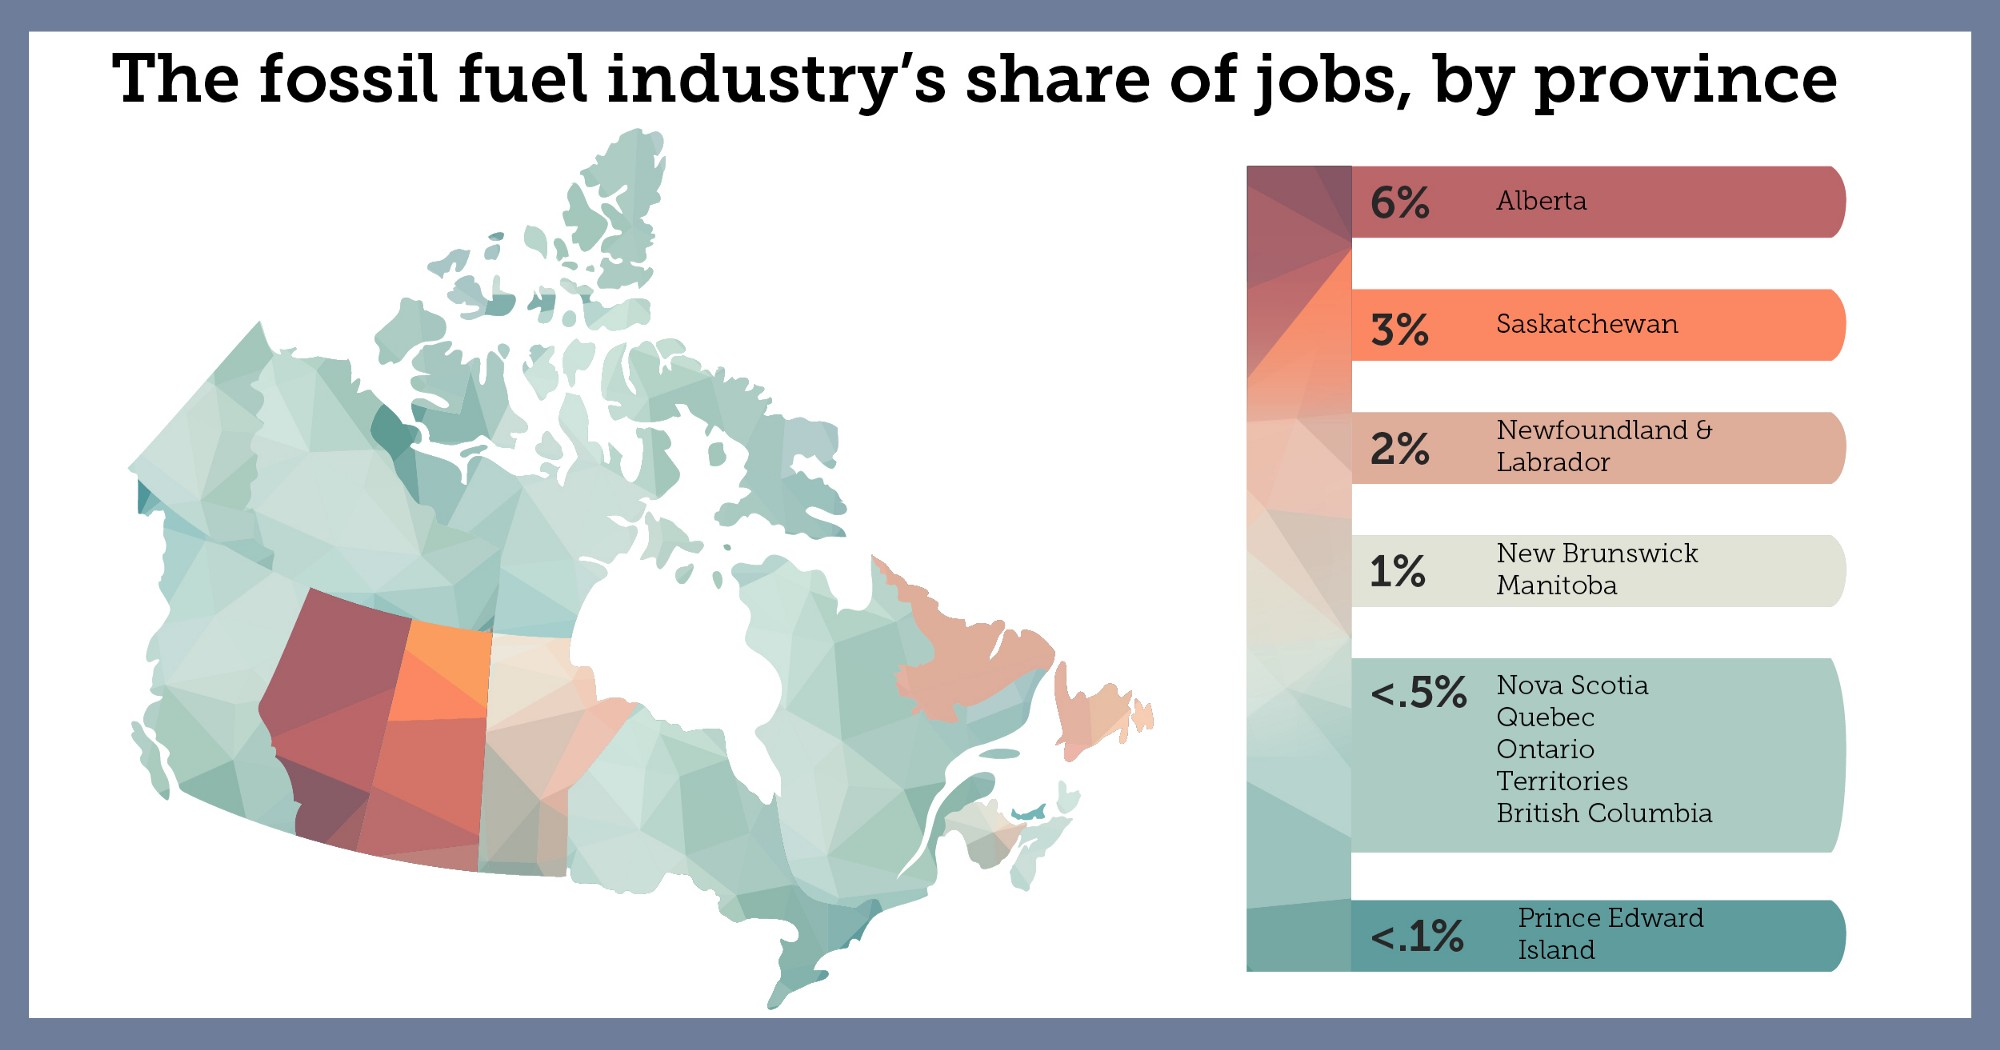 Map of Canada showing the fossil fuel industry's share of jobs by province. The greatest share of jobs is in Alberta (6%) Saskatchewan (3%) and Newfoundland and Labrador (2%)